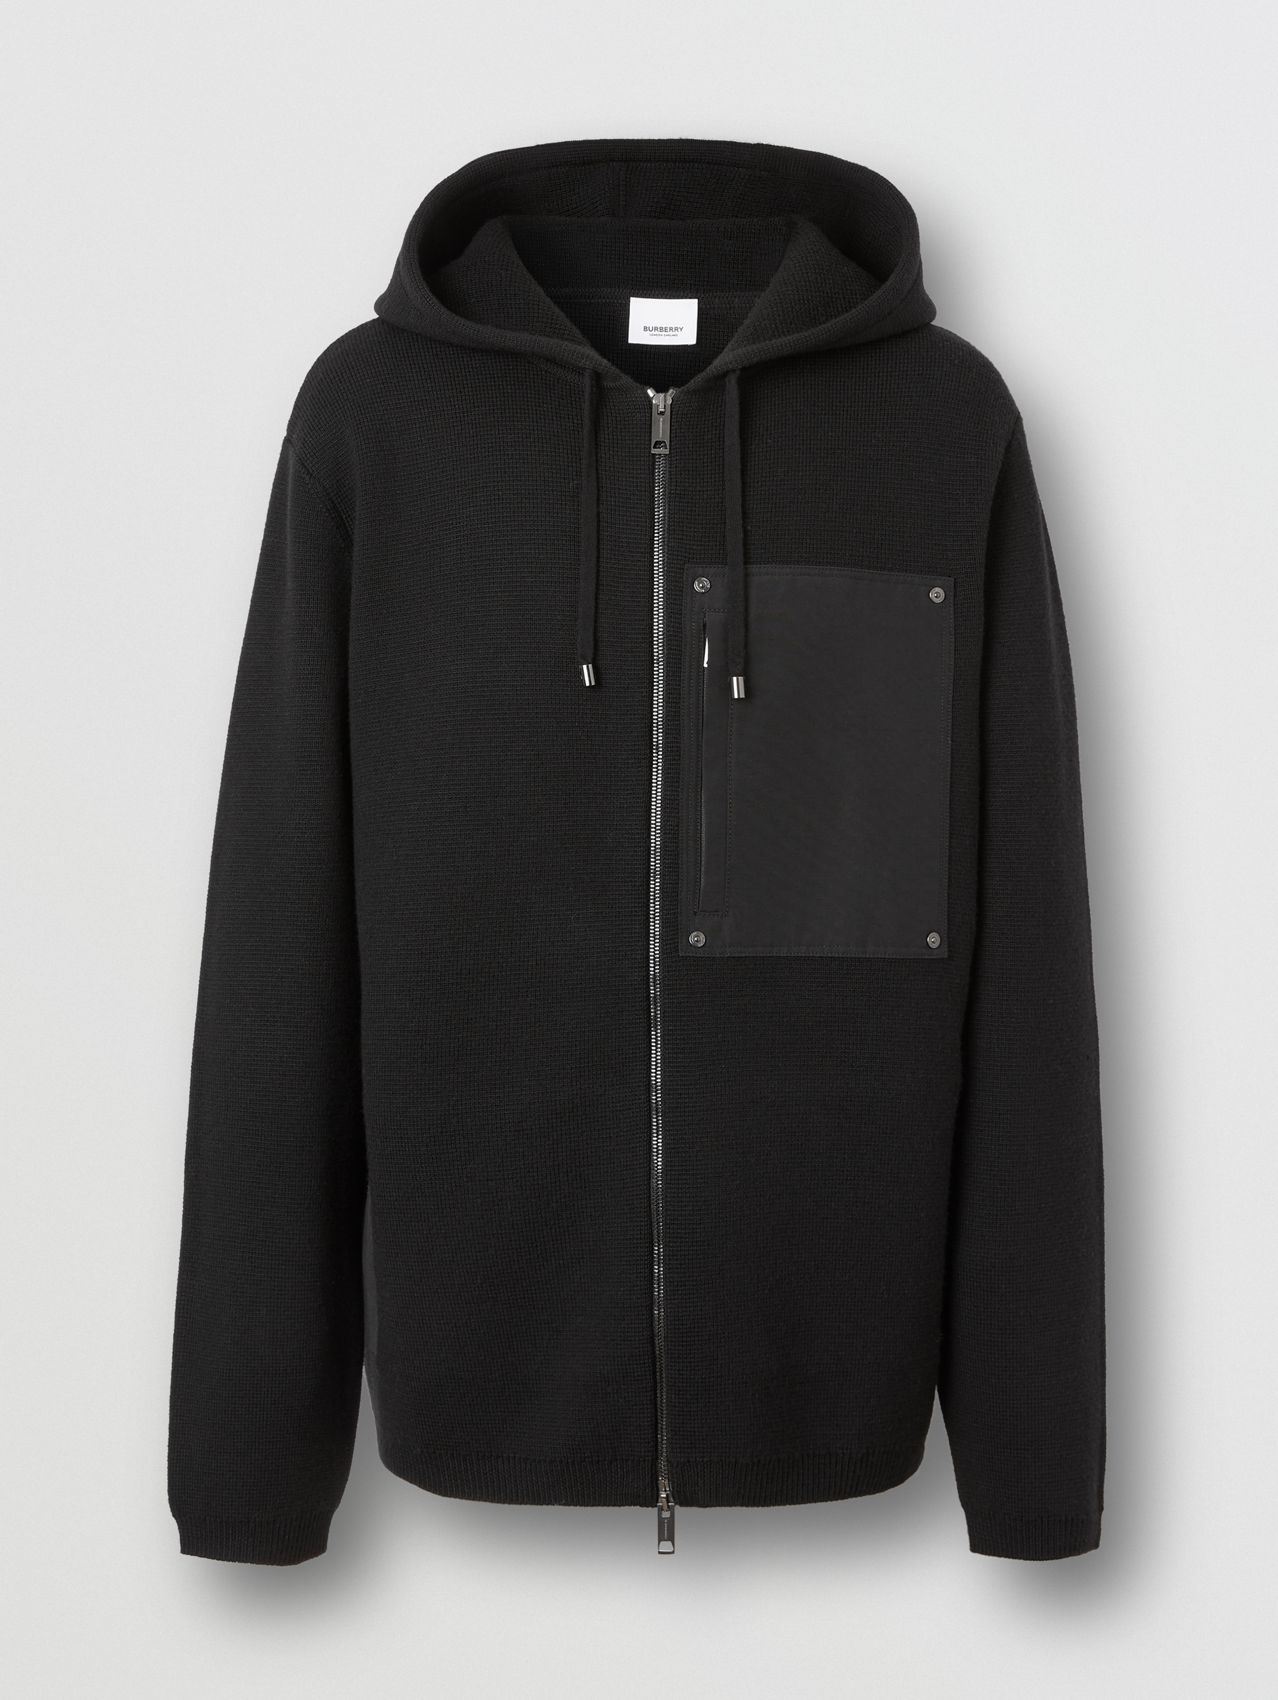 Contrast Pocket Wool Hooded Top in Black